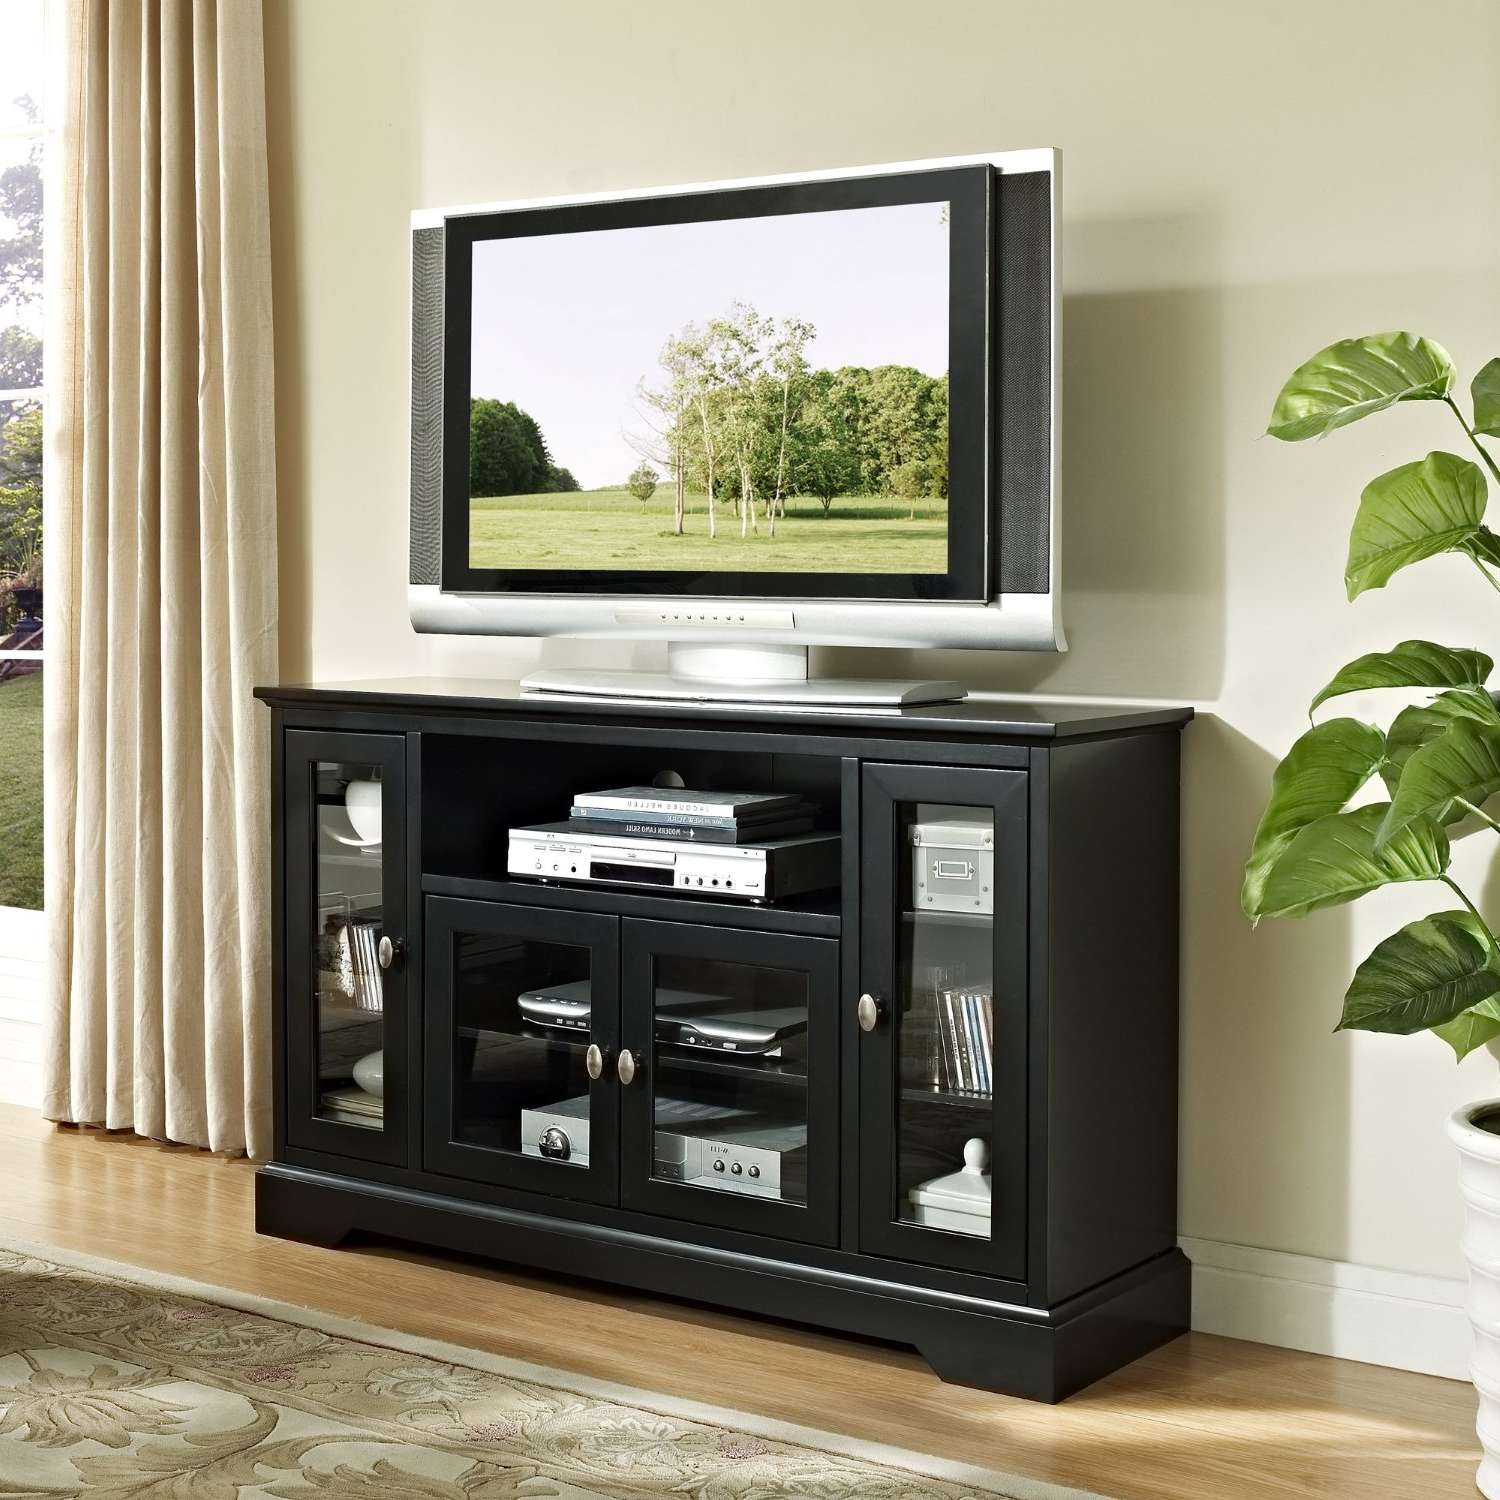 Modern Black Painted Mahogany Wood Media Stand With Glass Doors Of Regarding Wooden Tv Stands For Flat Screens (View 8 of 15)